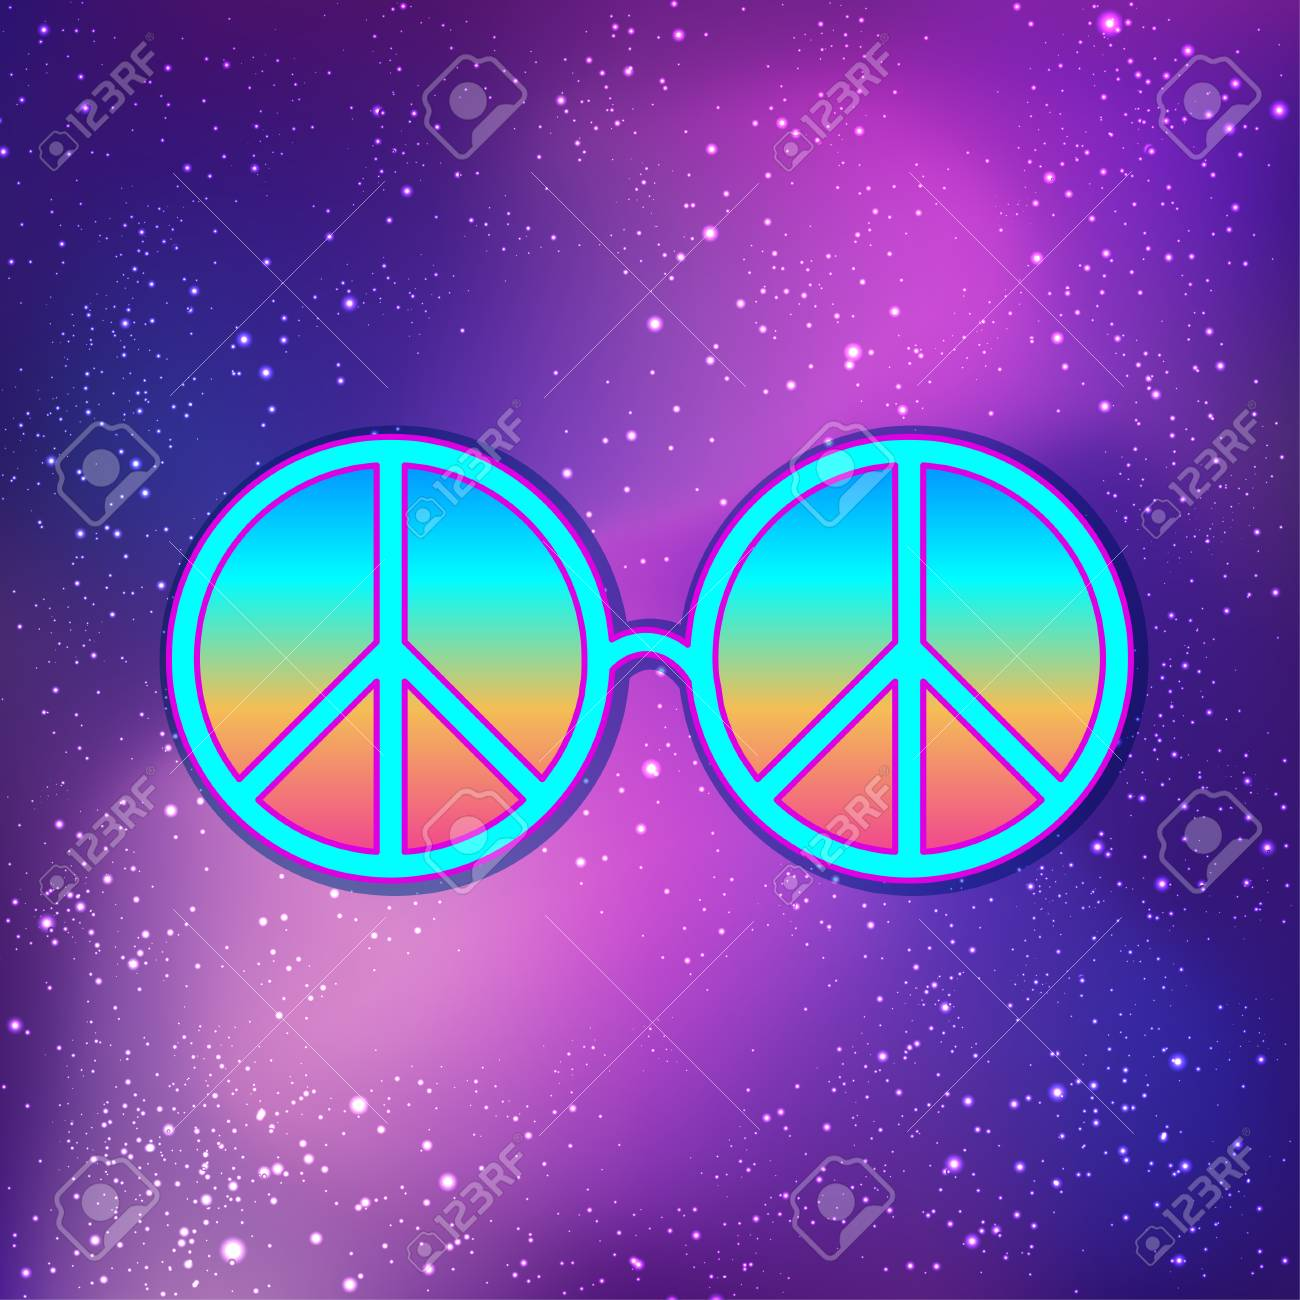 e06ecb14cc Round glasses with hippie peace sign over cosmic purple background.  Woodstock style poster template.